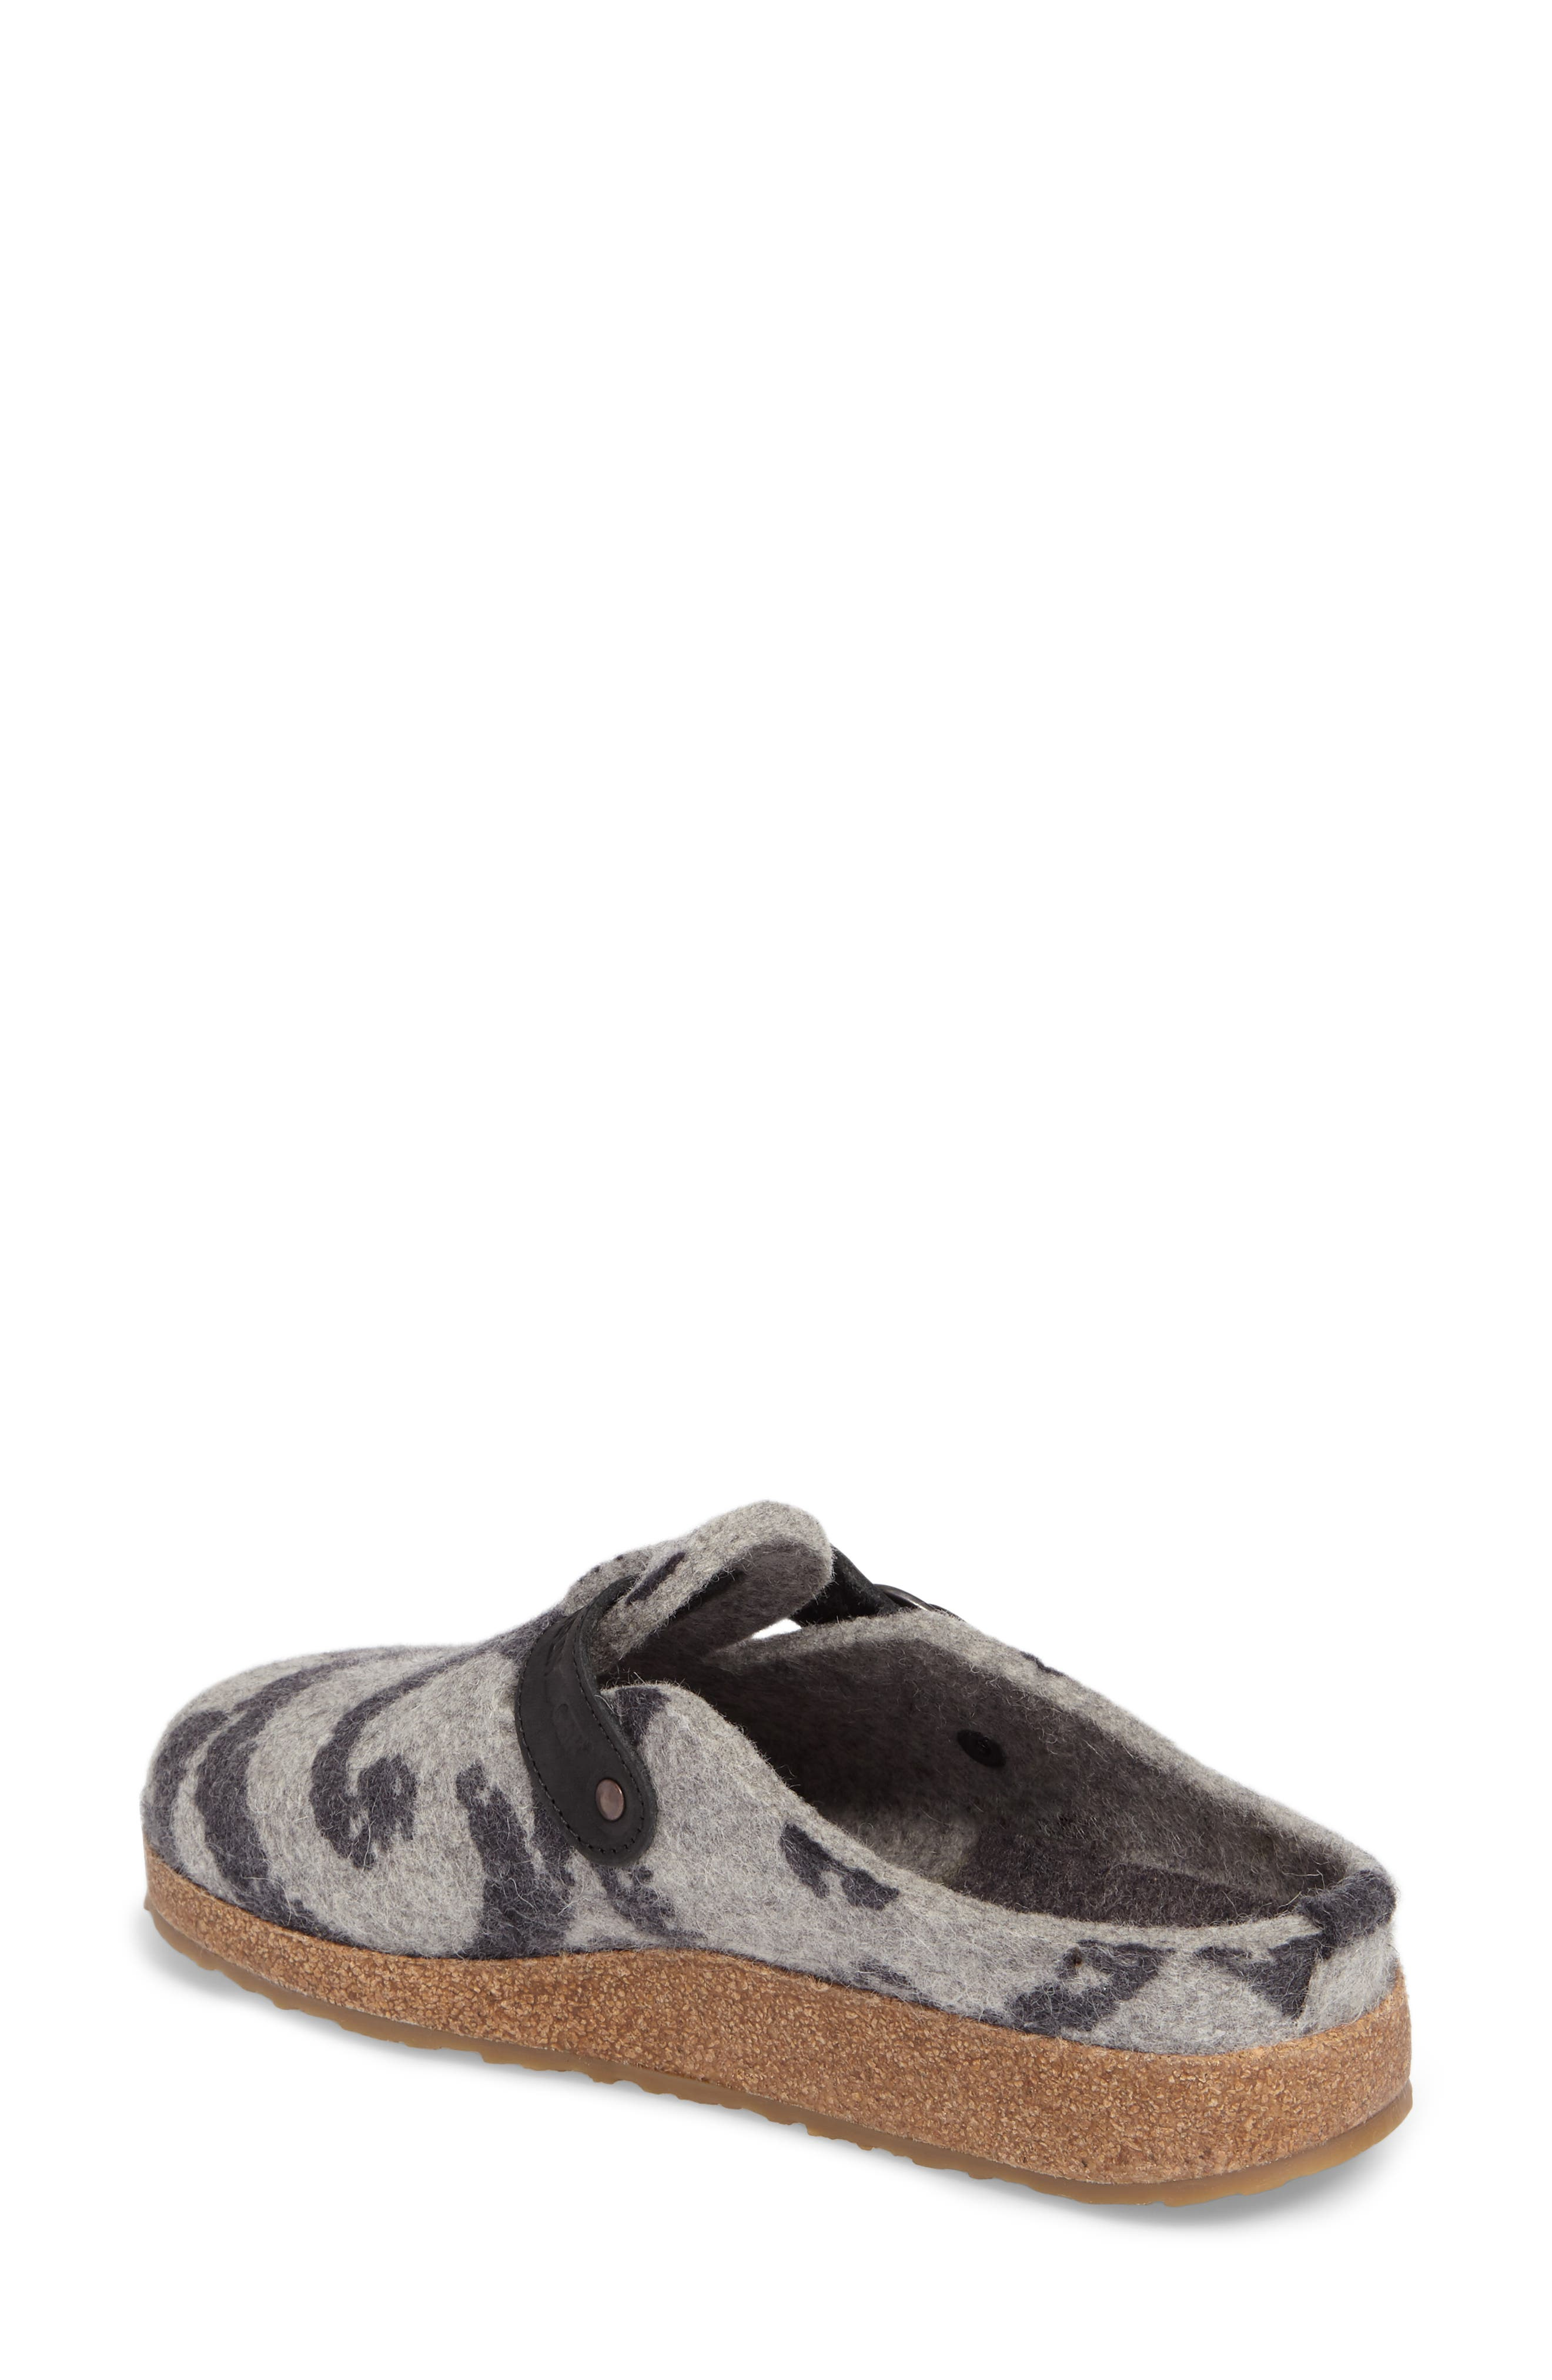 Alternate Image 2  - Haflinger GZB Print Slipper (Women)